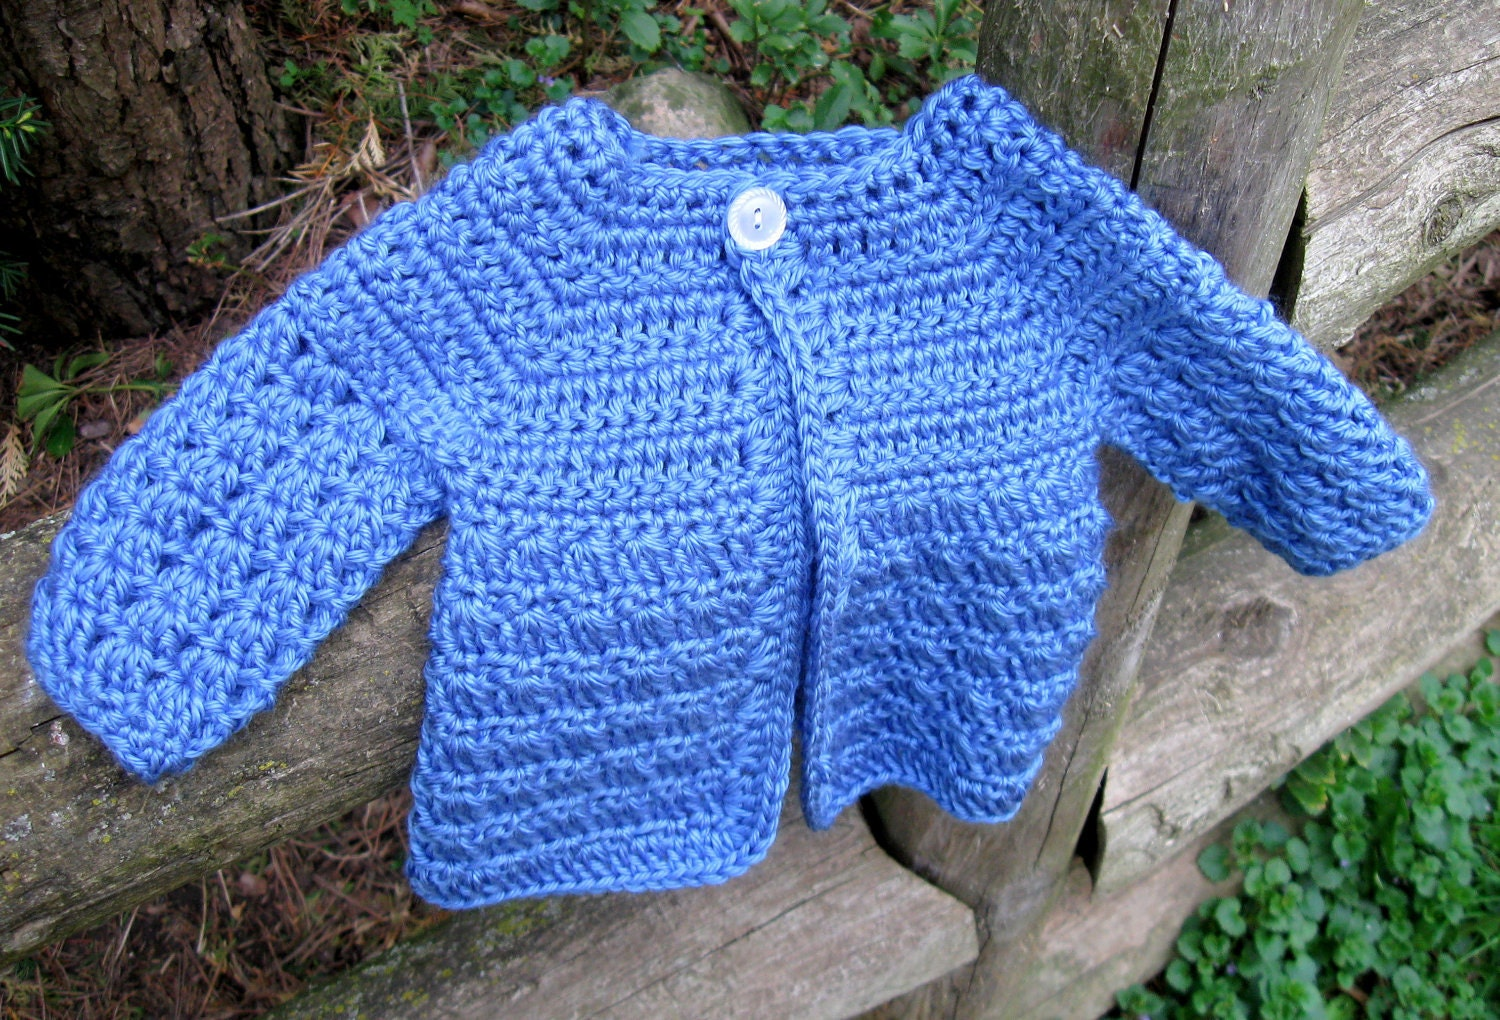 Free Crochet Patterns For Easy Baby Sweaters : Crochet Patterns Baby Sweater